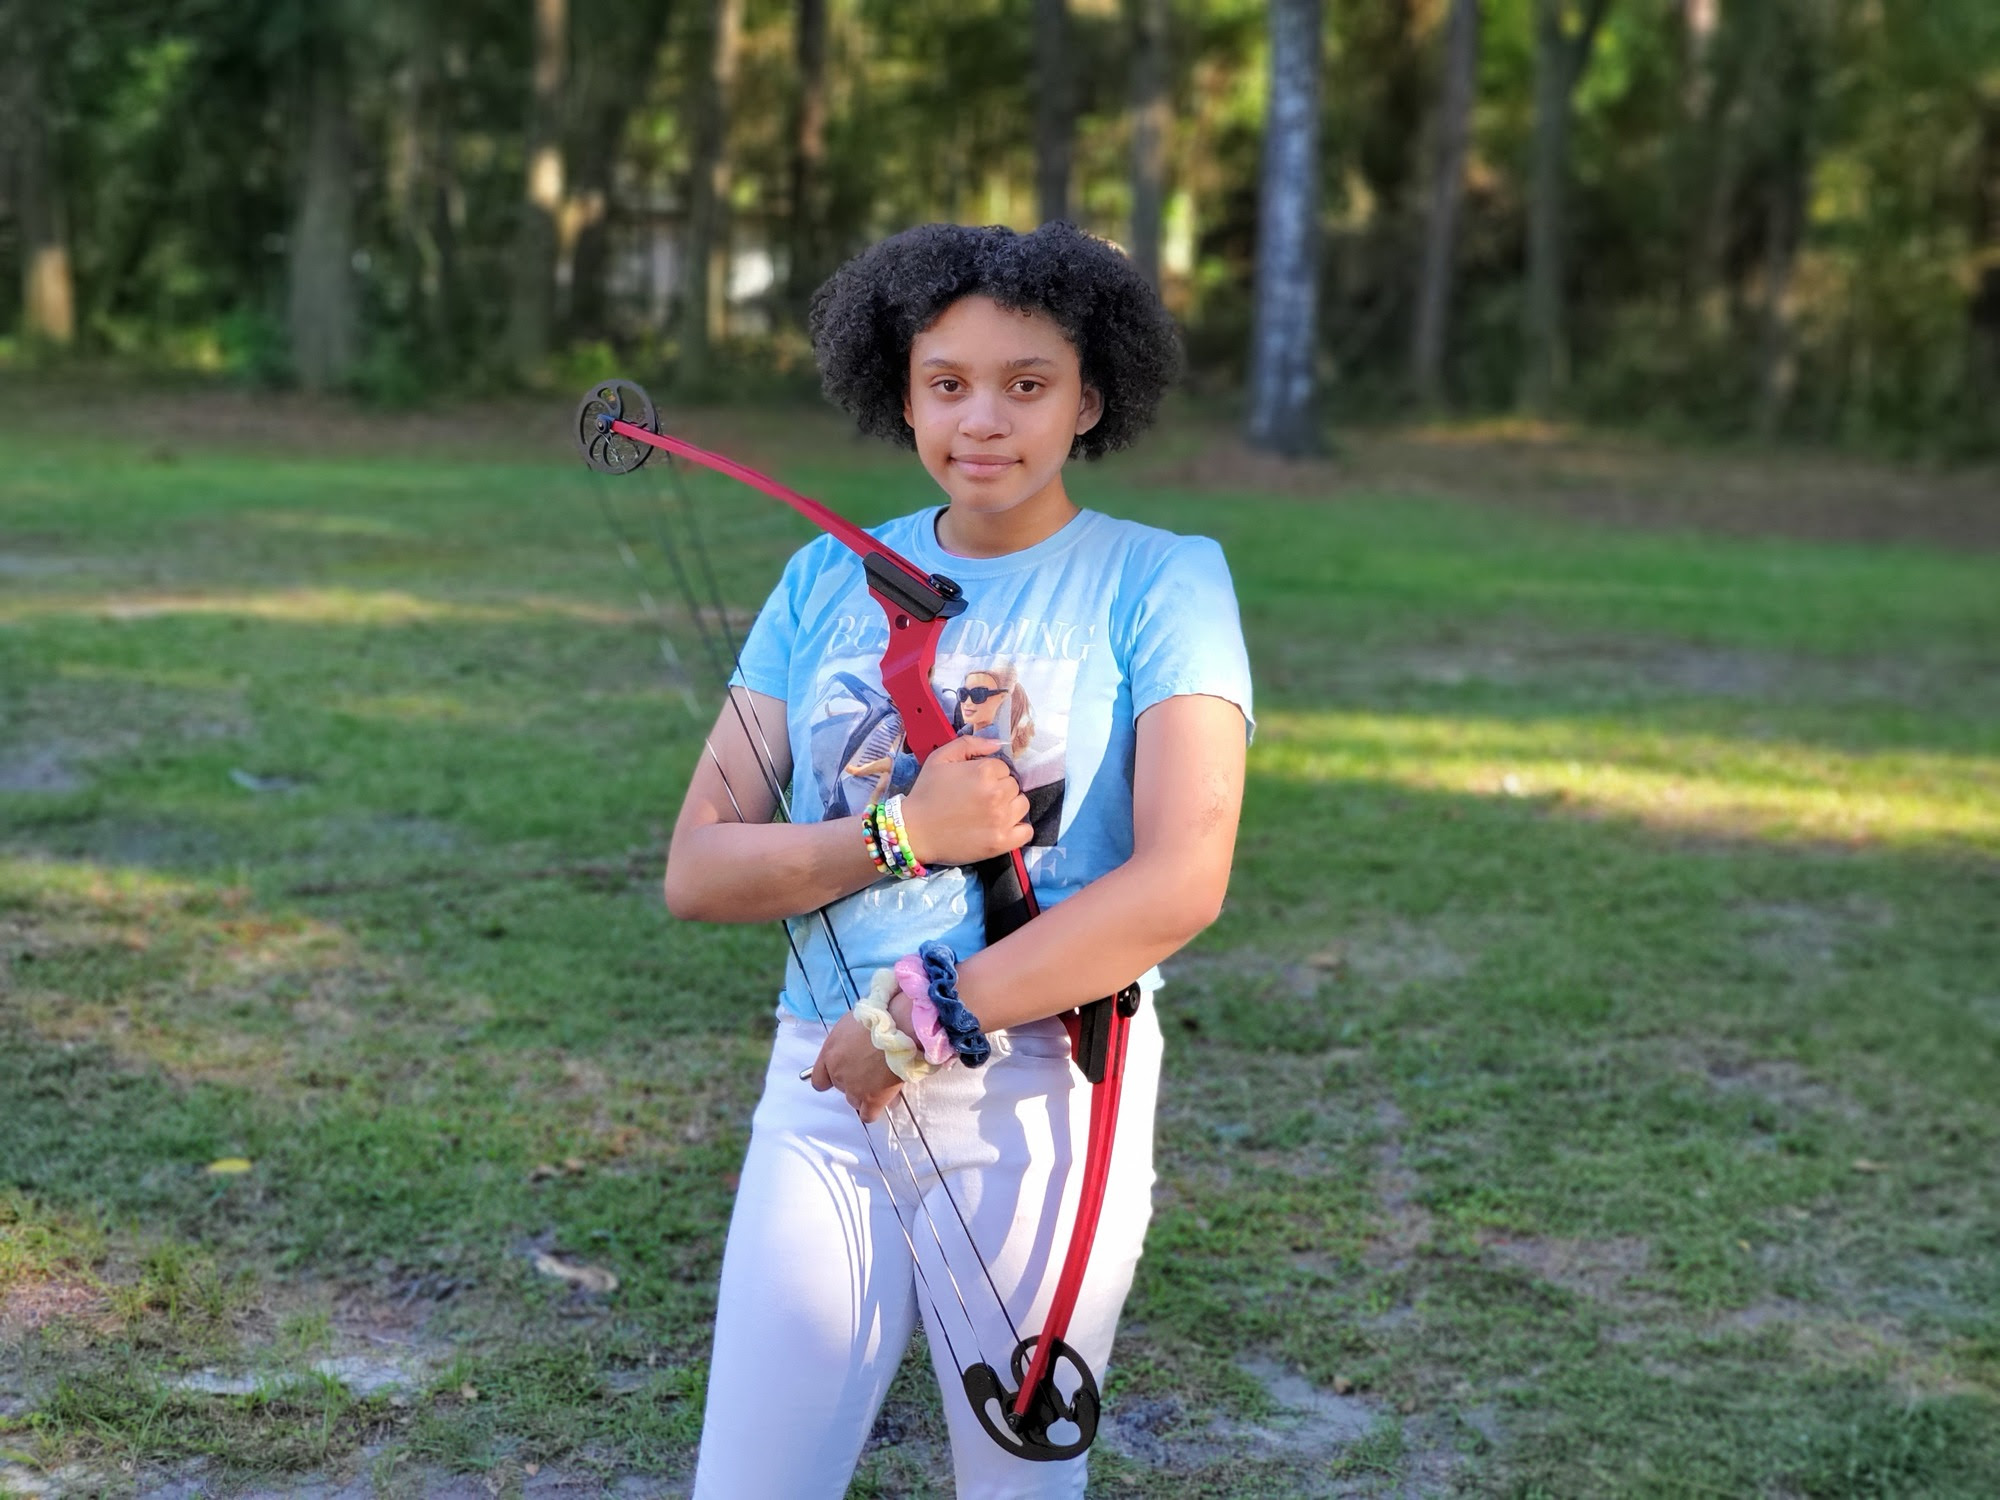 Alabama Student Named One of Top 10 Academic Archers in U.S.